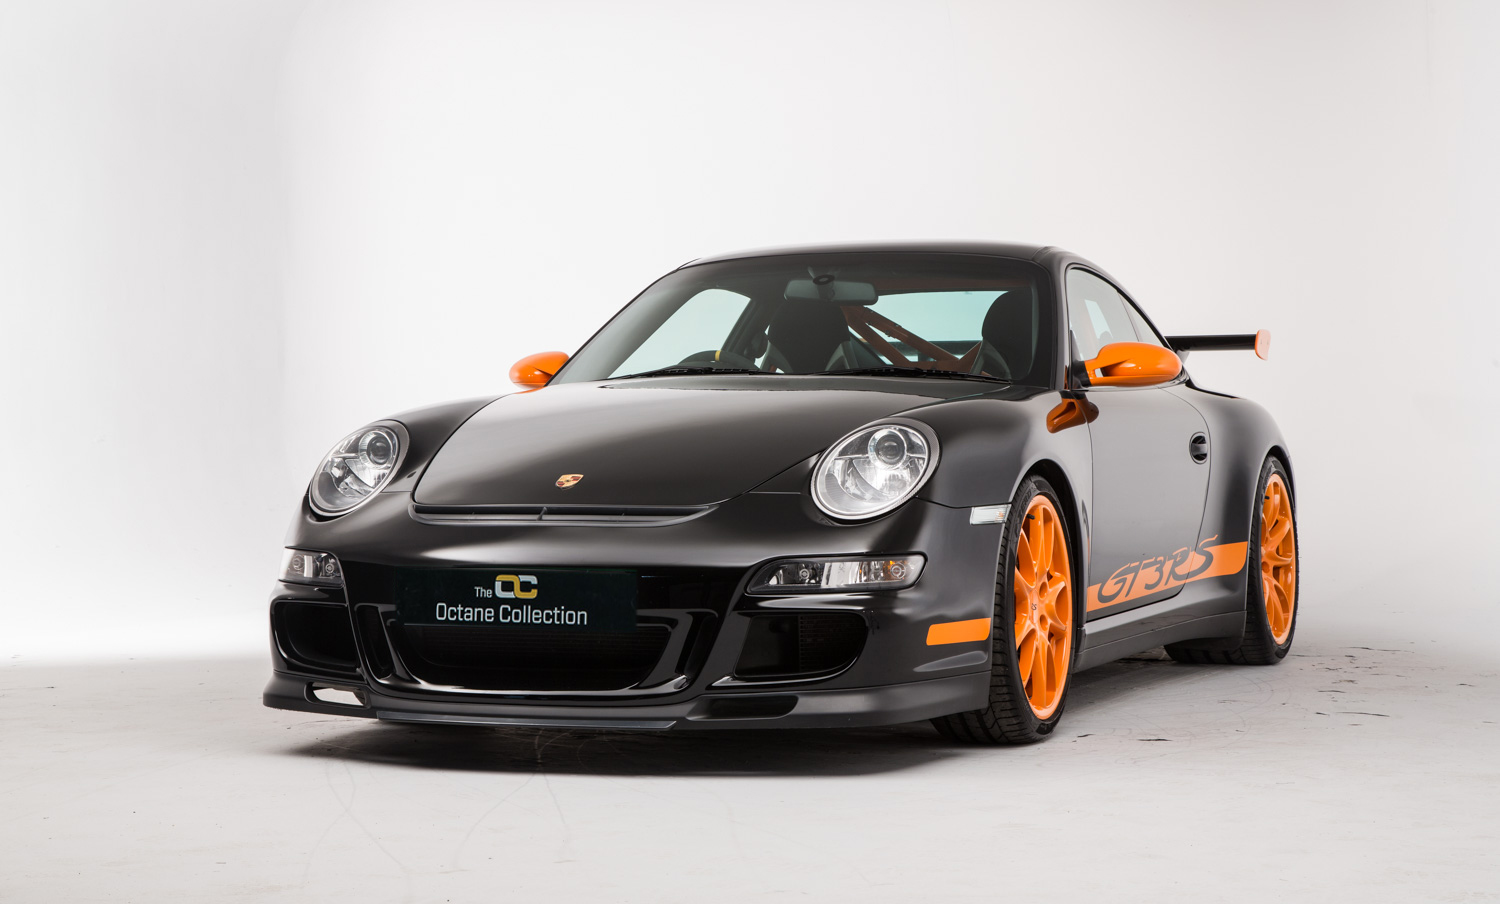 porsche 911 gt3 rs the octane collection. Black Bedroom Furniture Sets. Home Design Ideas